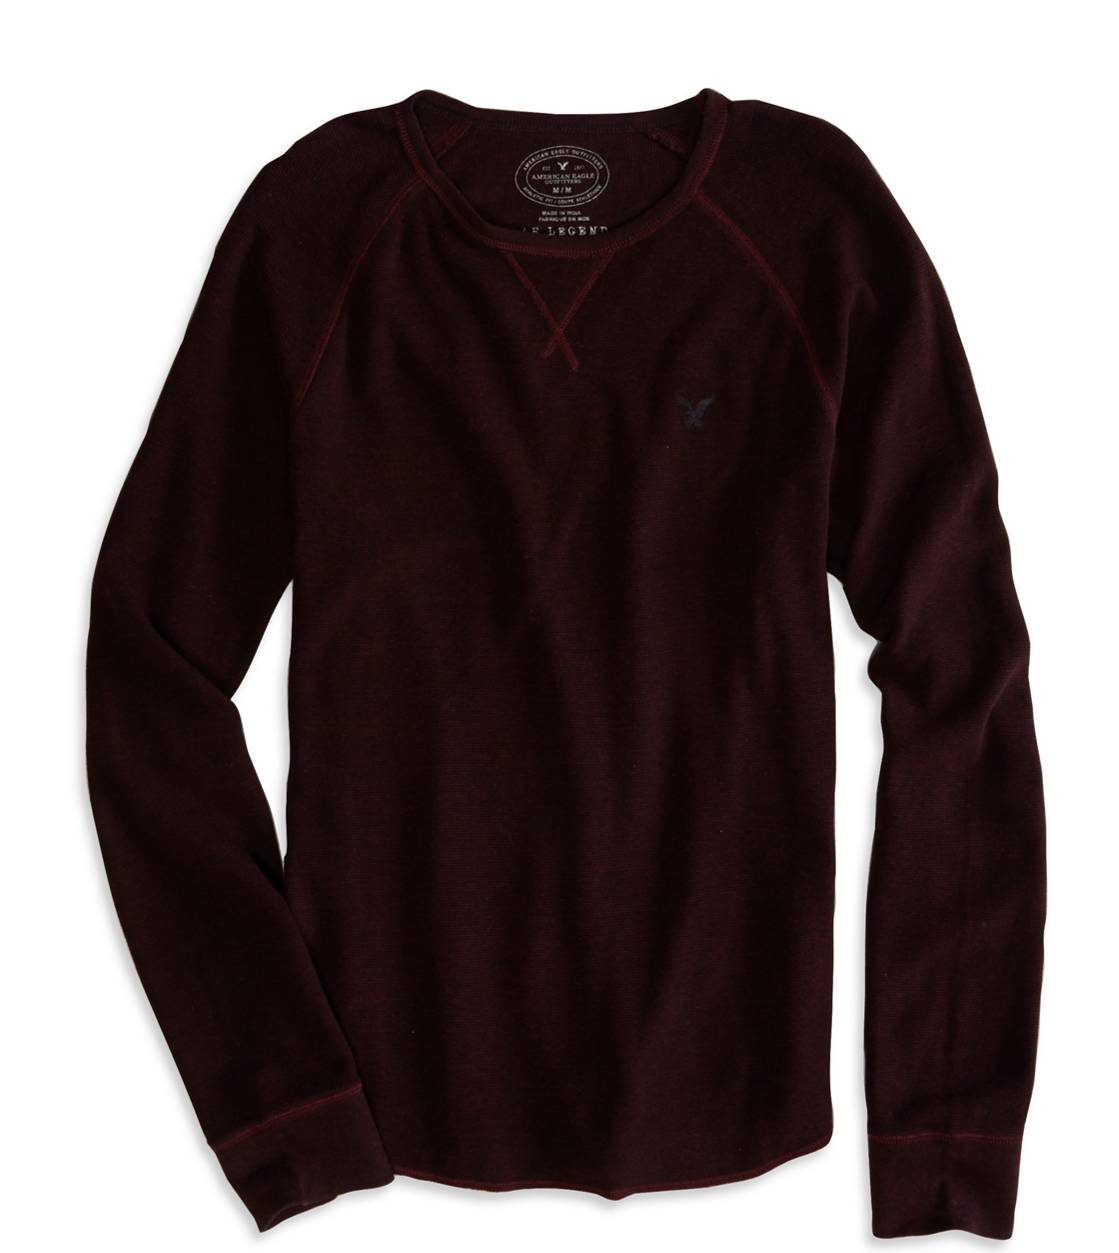 Claret Marl AE Merry Maker Thermal